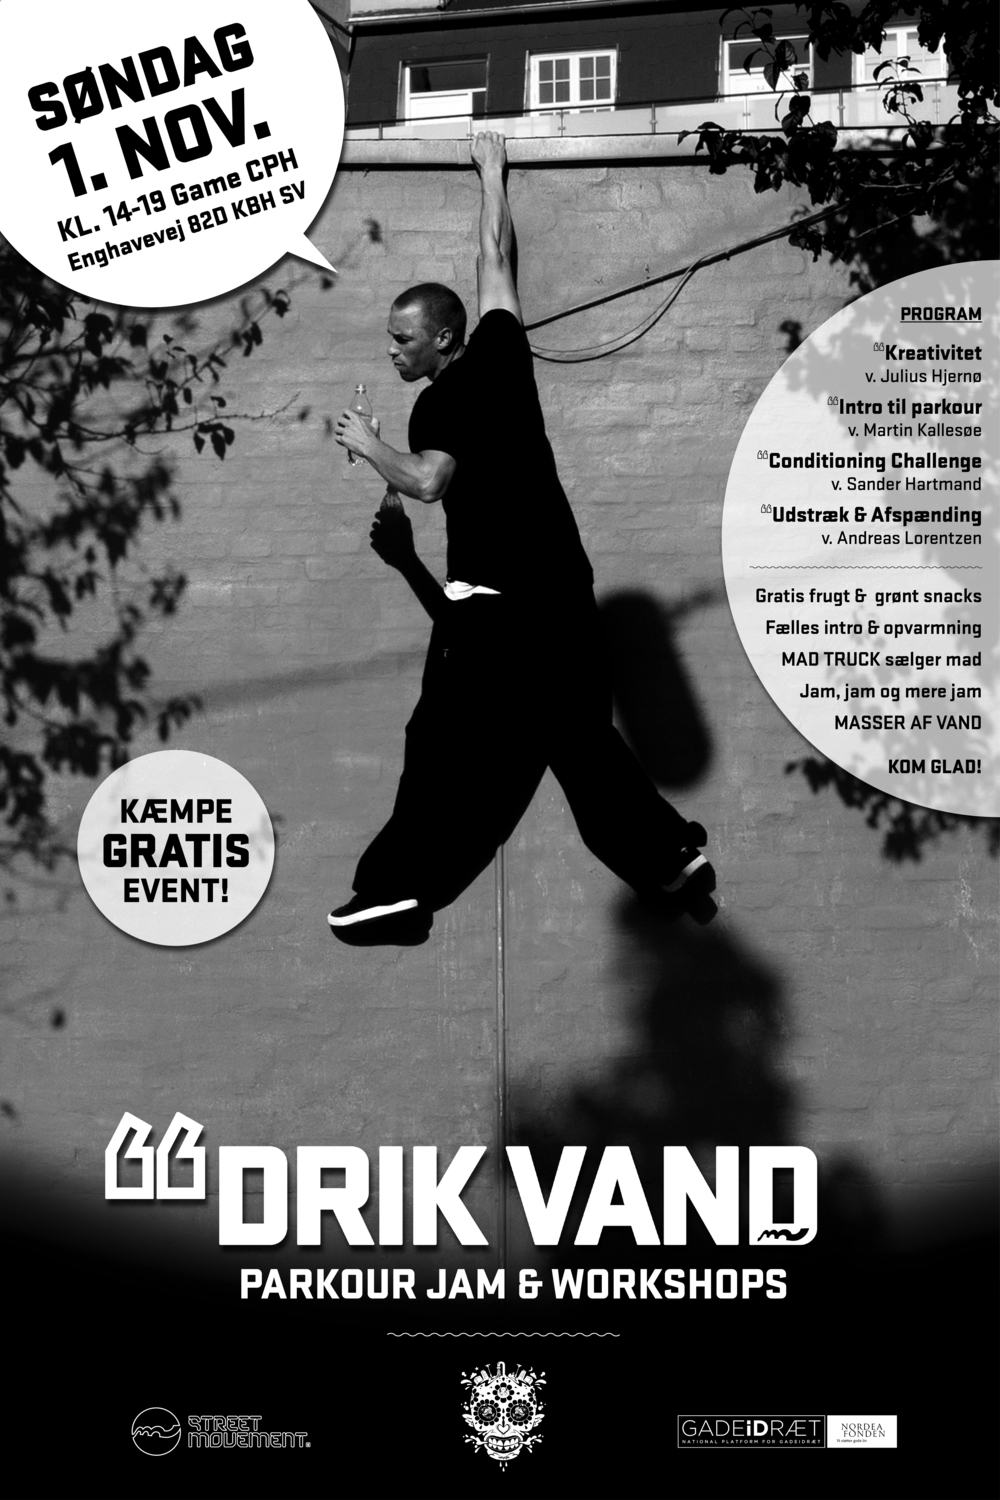 Drik Vand Event The event was held on November 1st 2015. Check out the event video by Rumle Kjær.